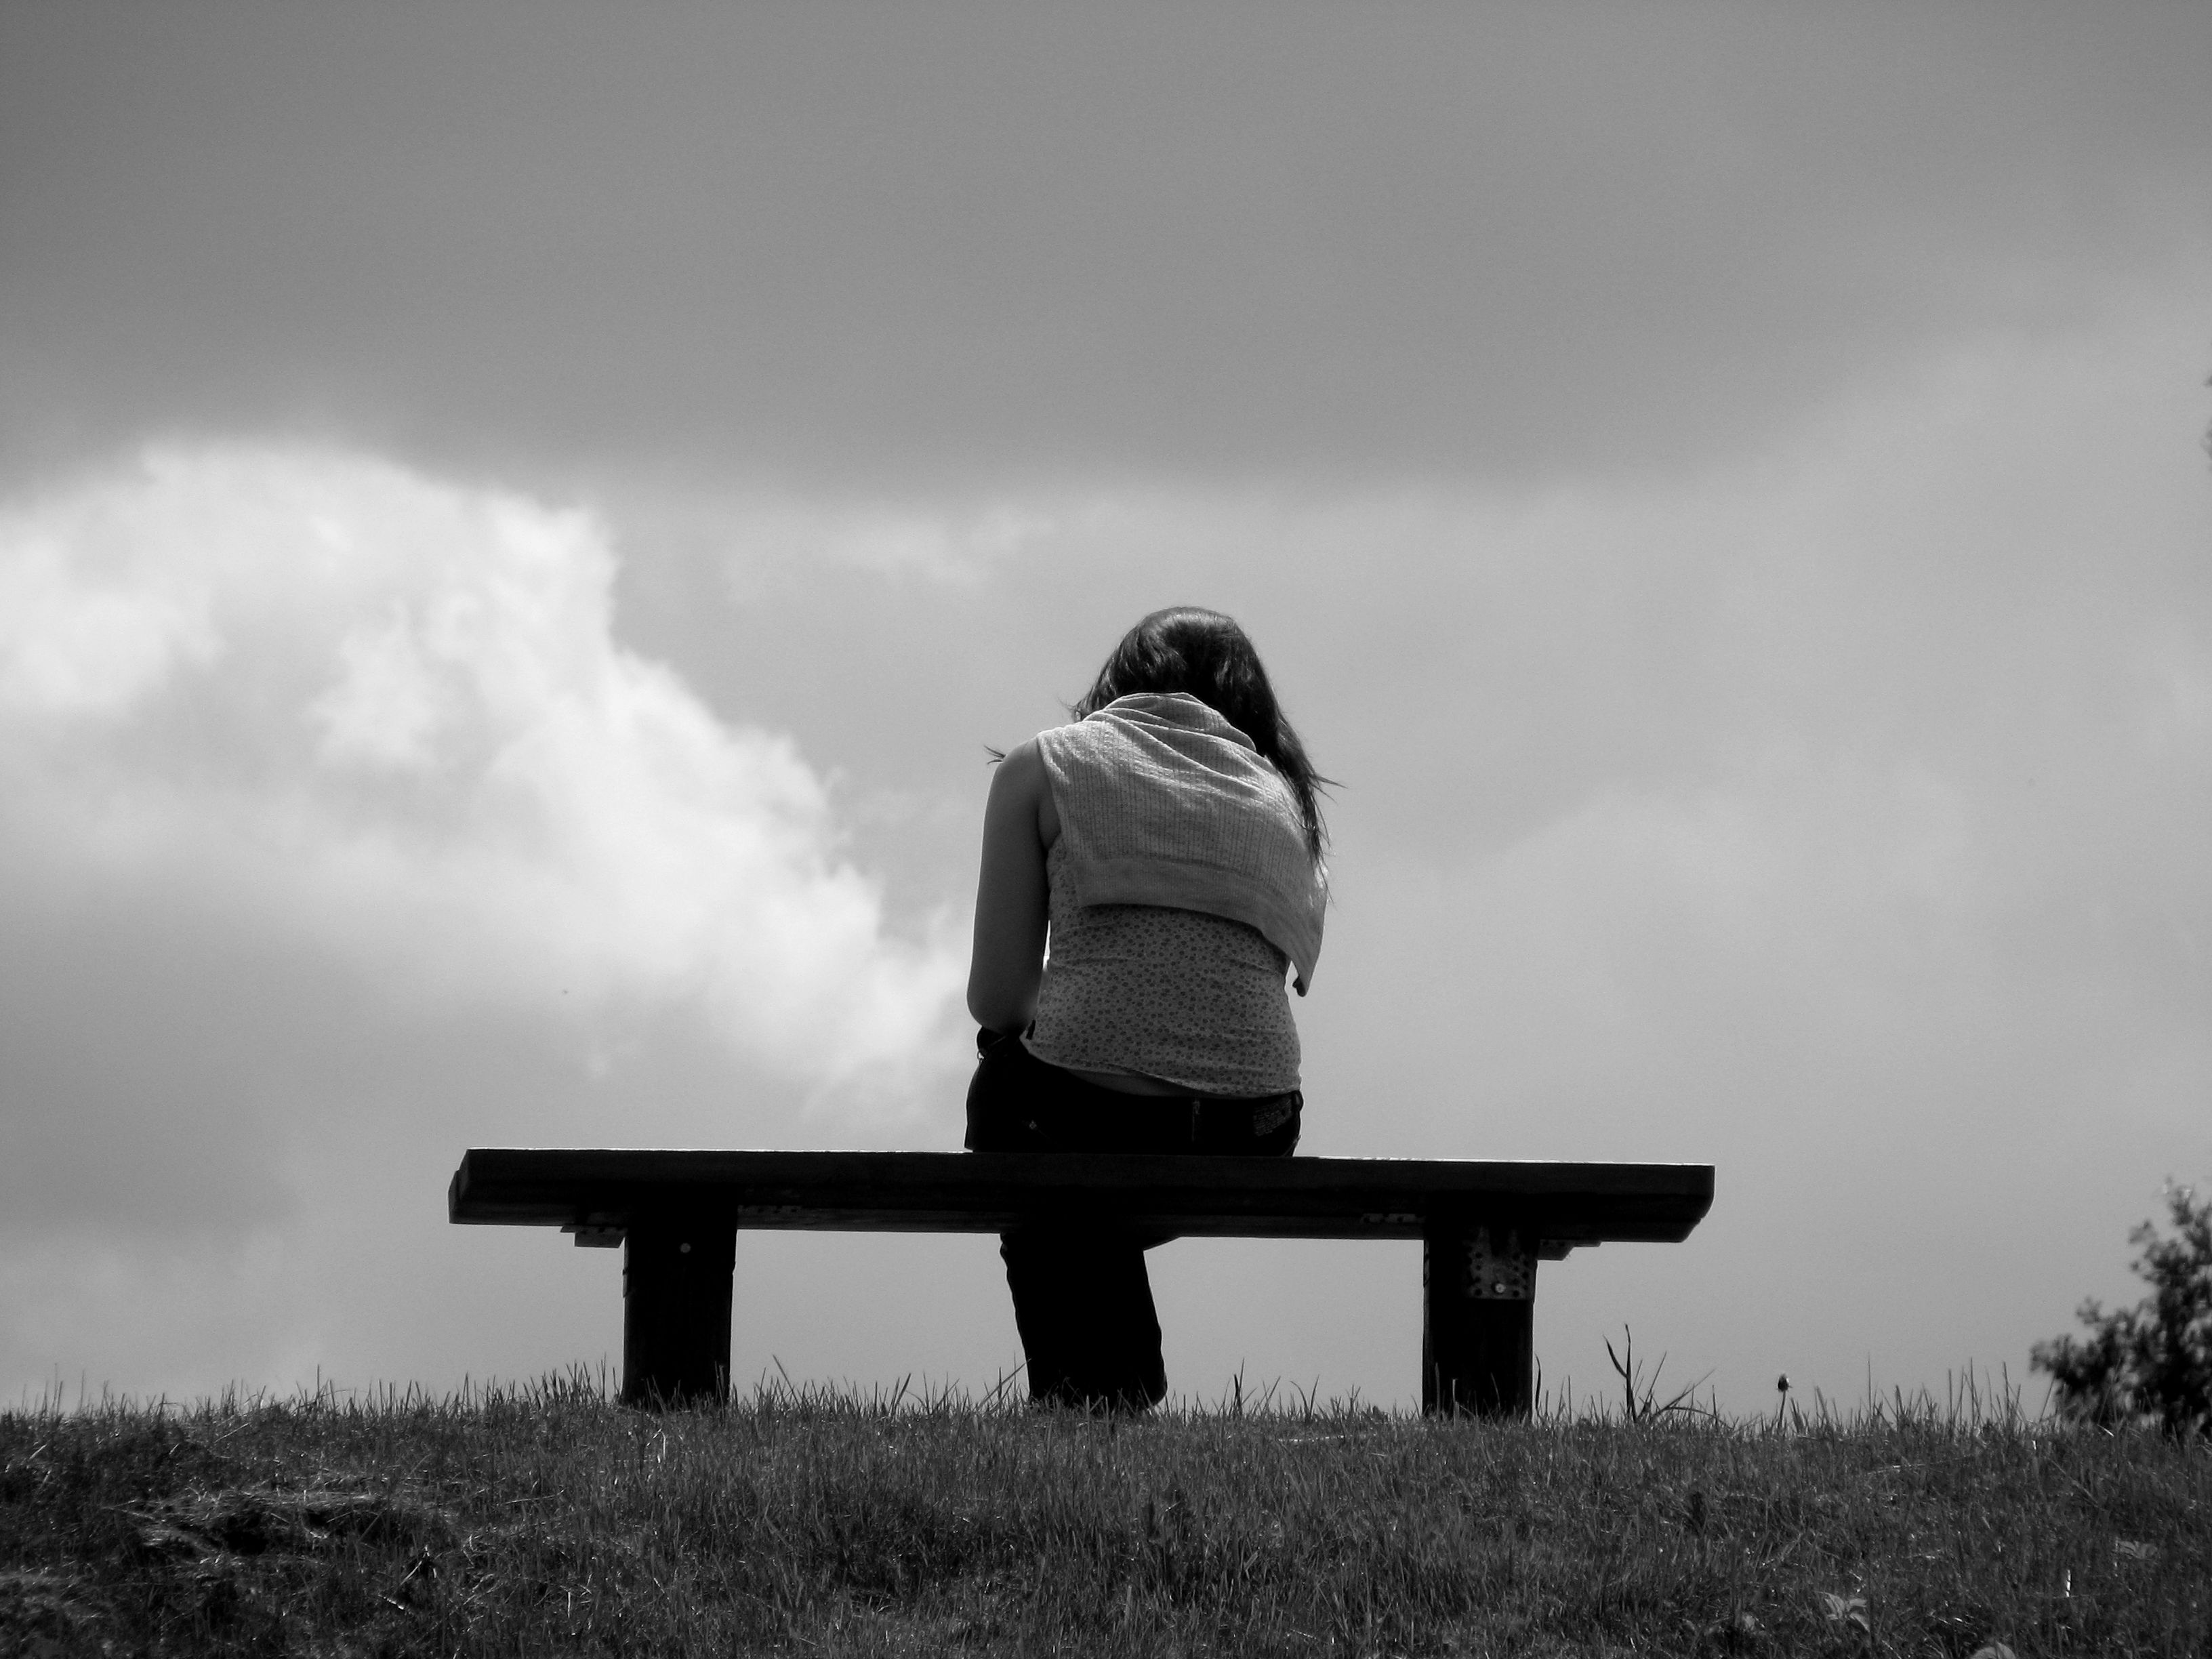 Does Being Single Really Affect Your Health Negatively